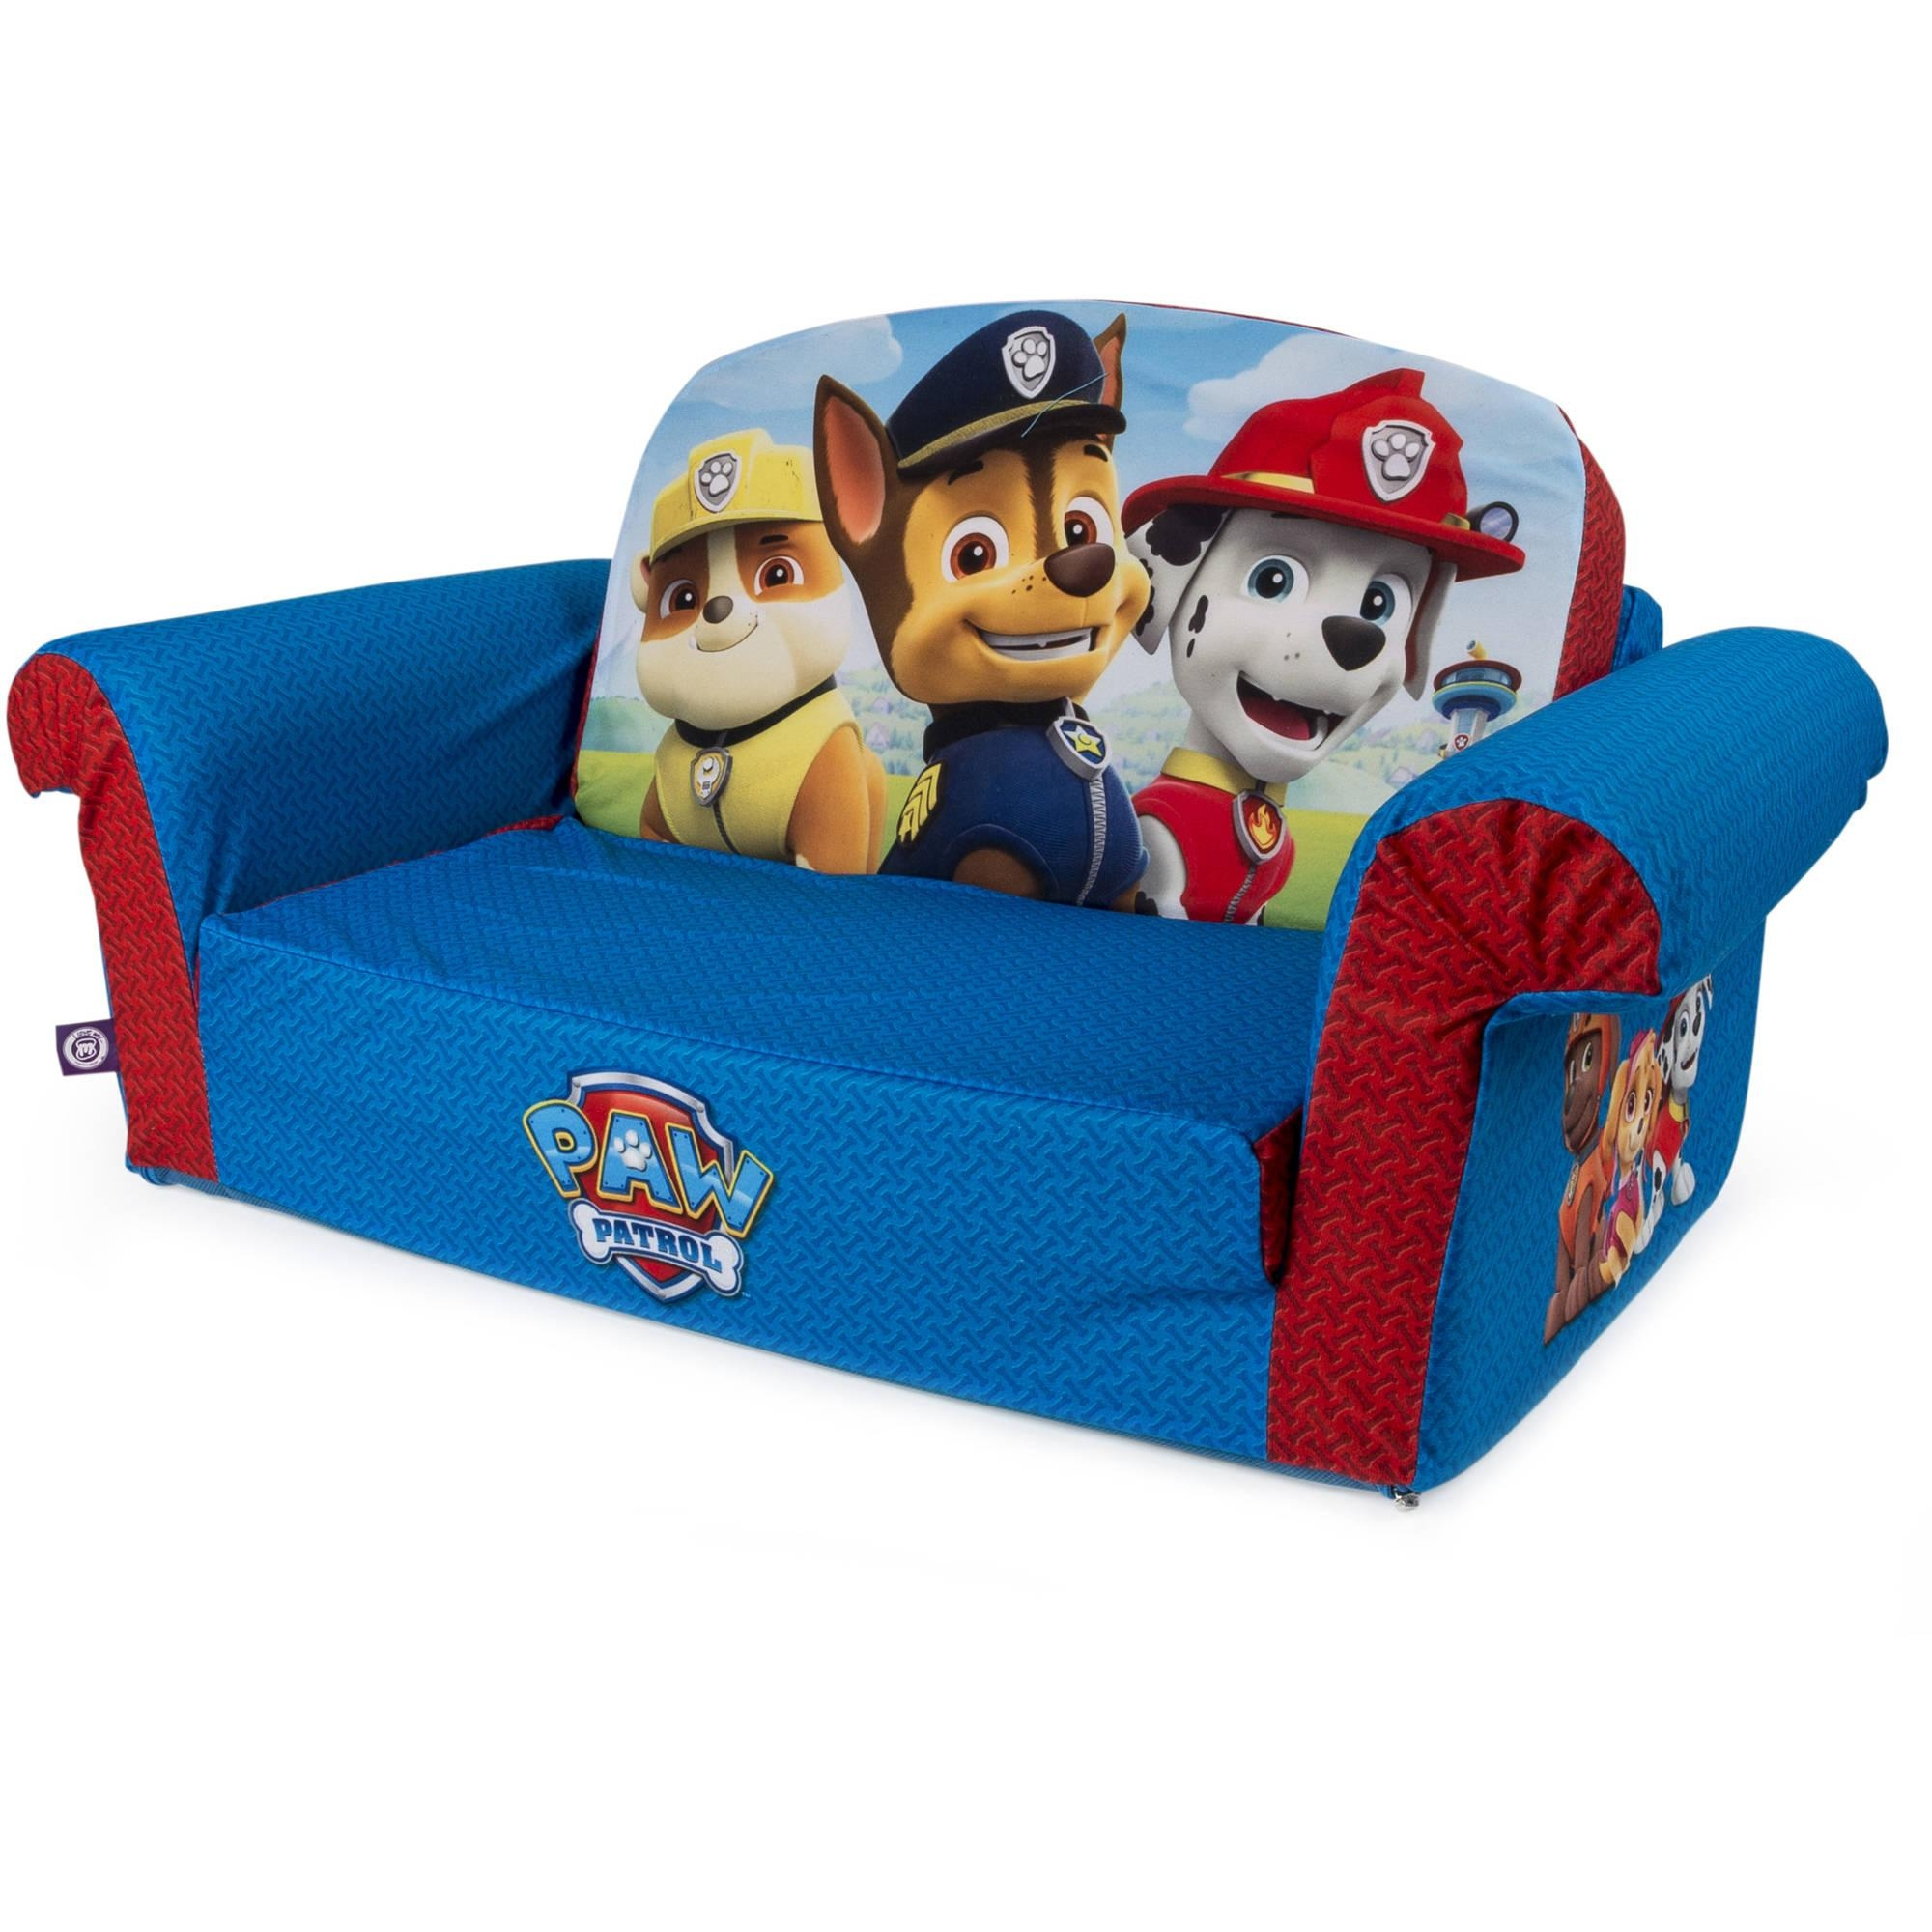 Marshmallow Furniture, Children's 2 In 1 Flip Open Foam Sofa Inside Flip Out Sofa For Kids (View 6 of 20)